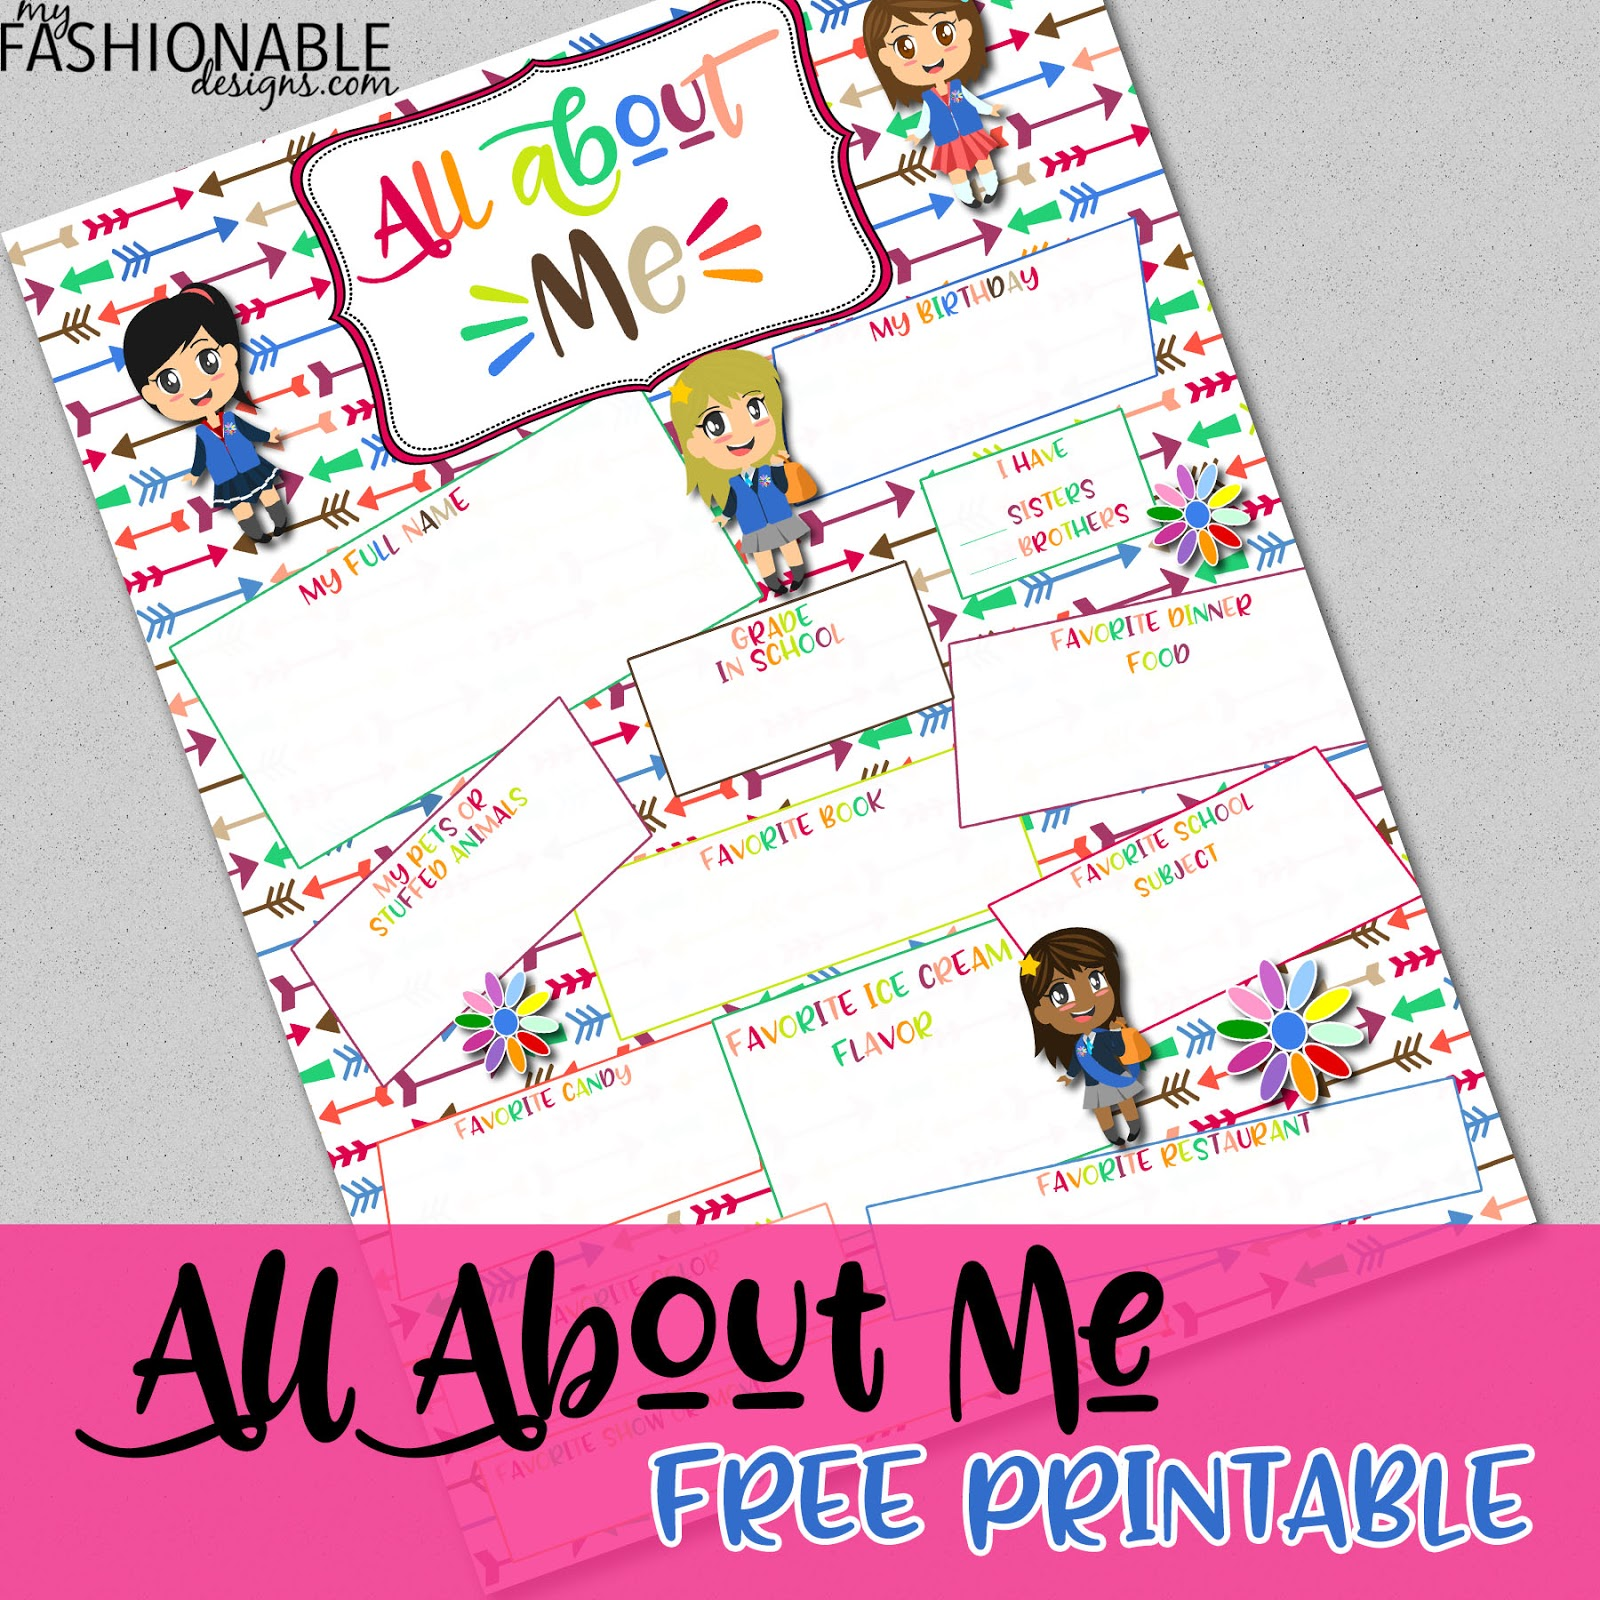 photo about All About Me Free Printable referred to as My Present day Patterns: Cost-free Printable All Above Me Web page